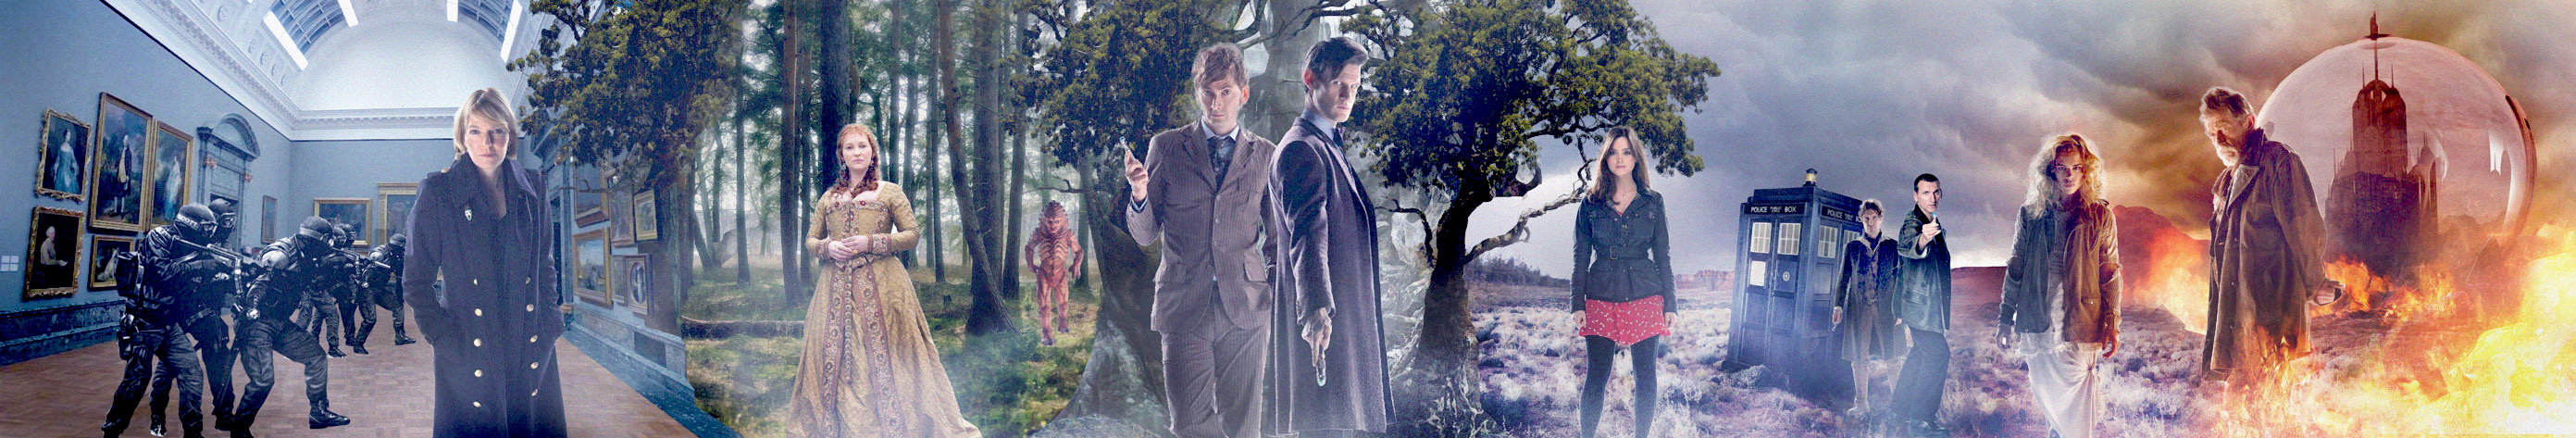 Day of the doctor banner